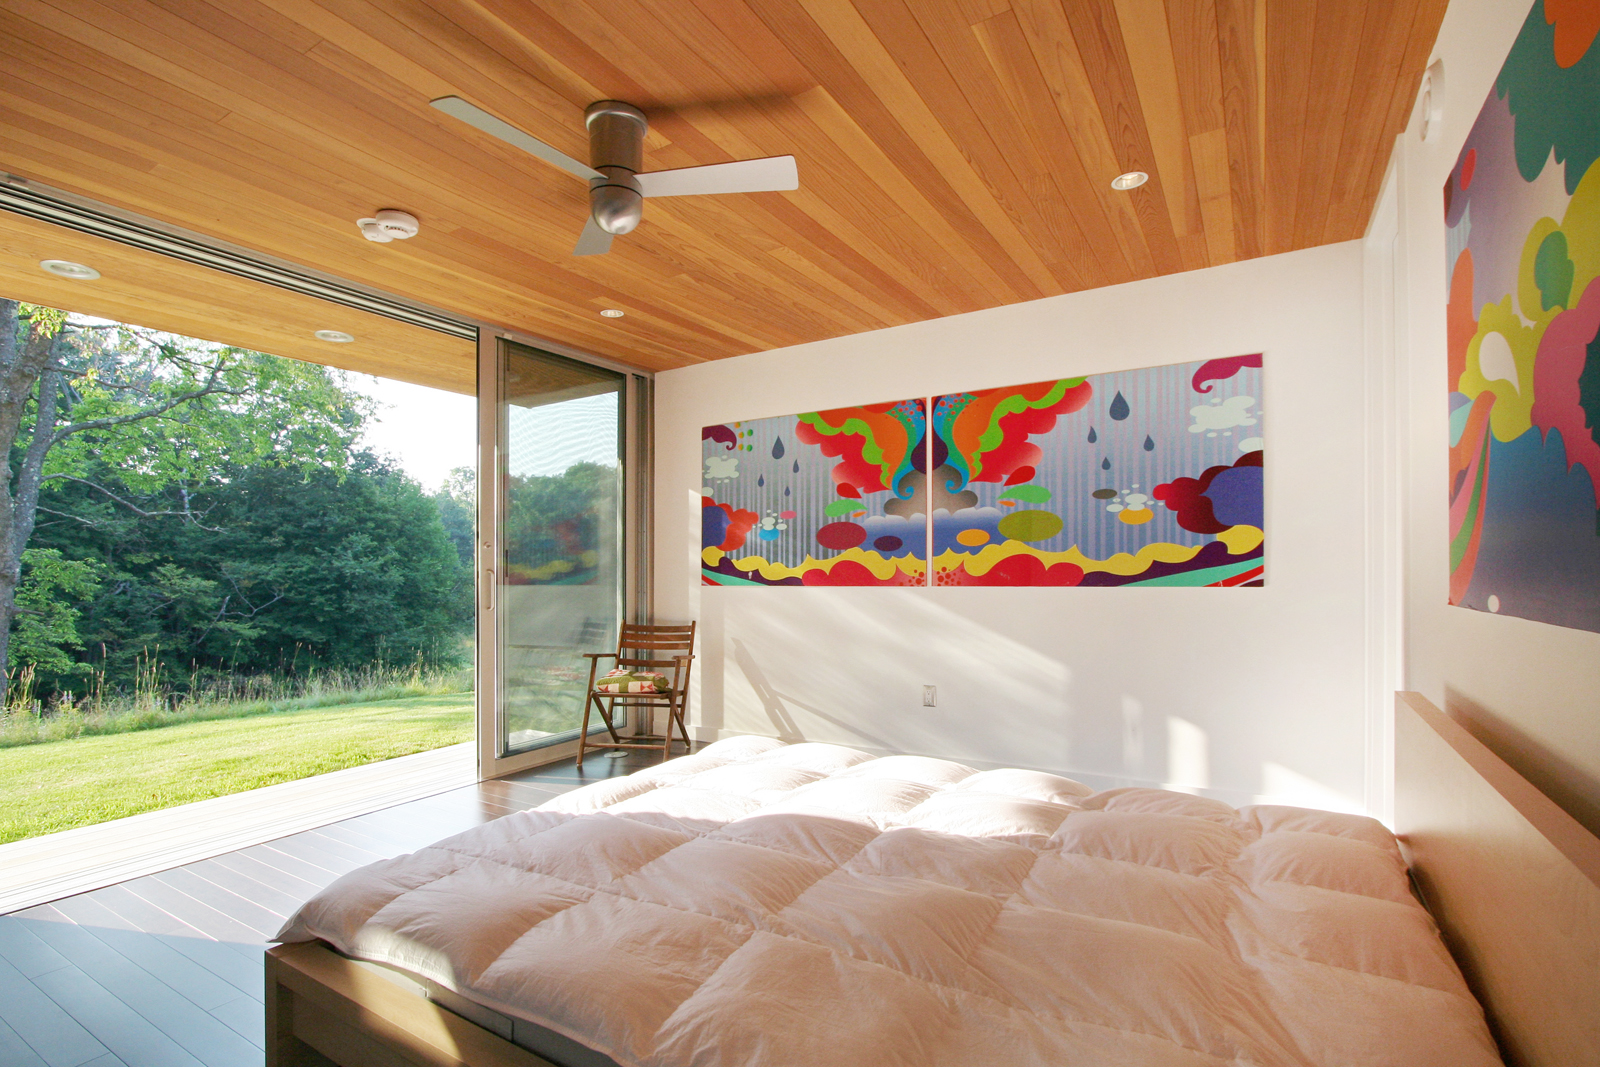 09-res4-resolution-4-architecture-modern-modular-home-prefab-sunset-ridge-house-interior-open-bedroom.jpg